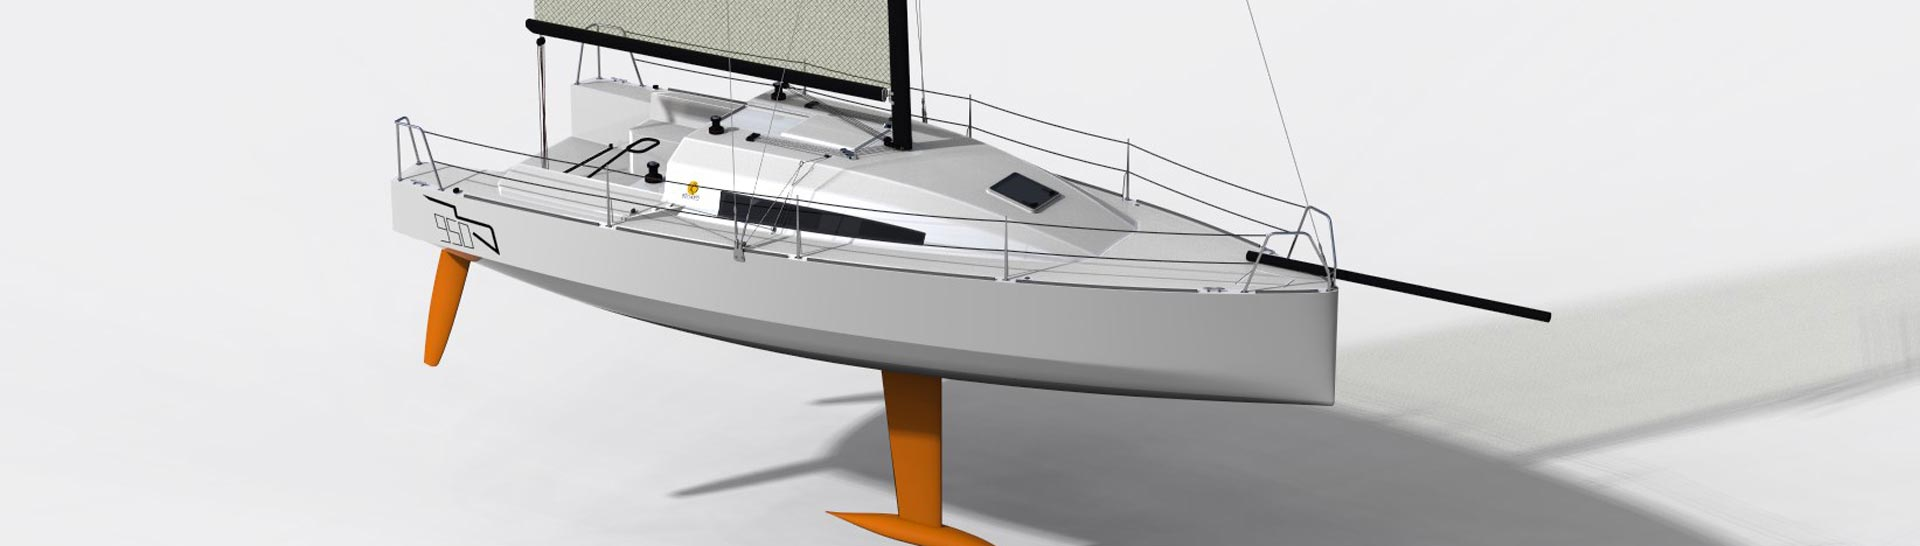 water ballasted racing sloop, classe 950, offshore racing